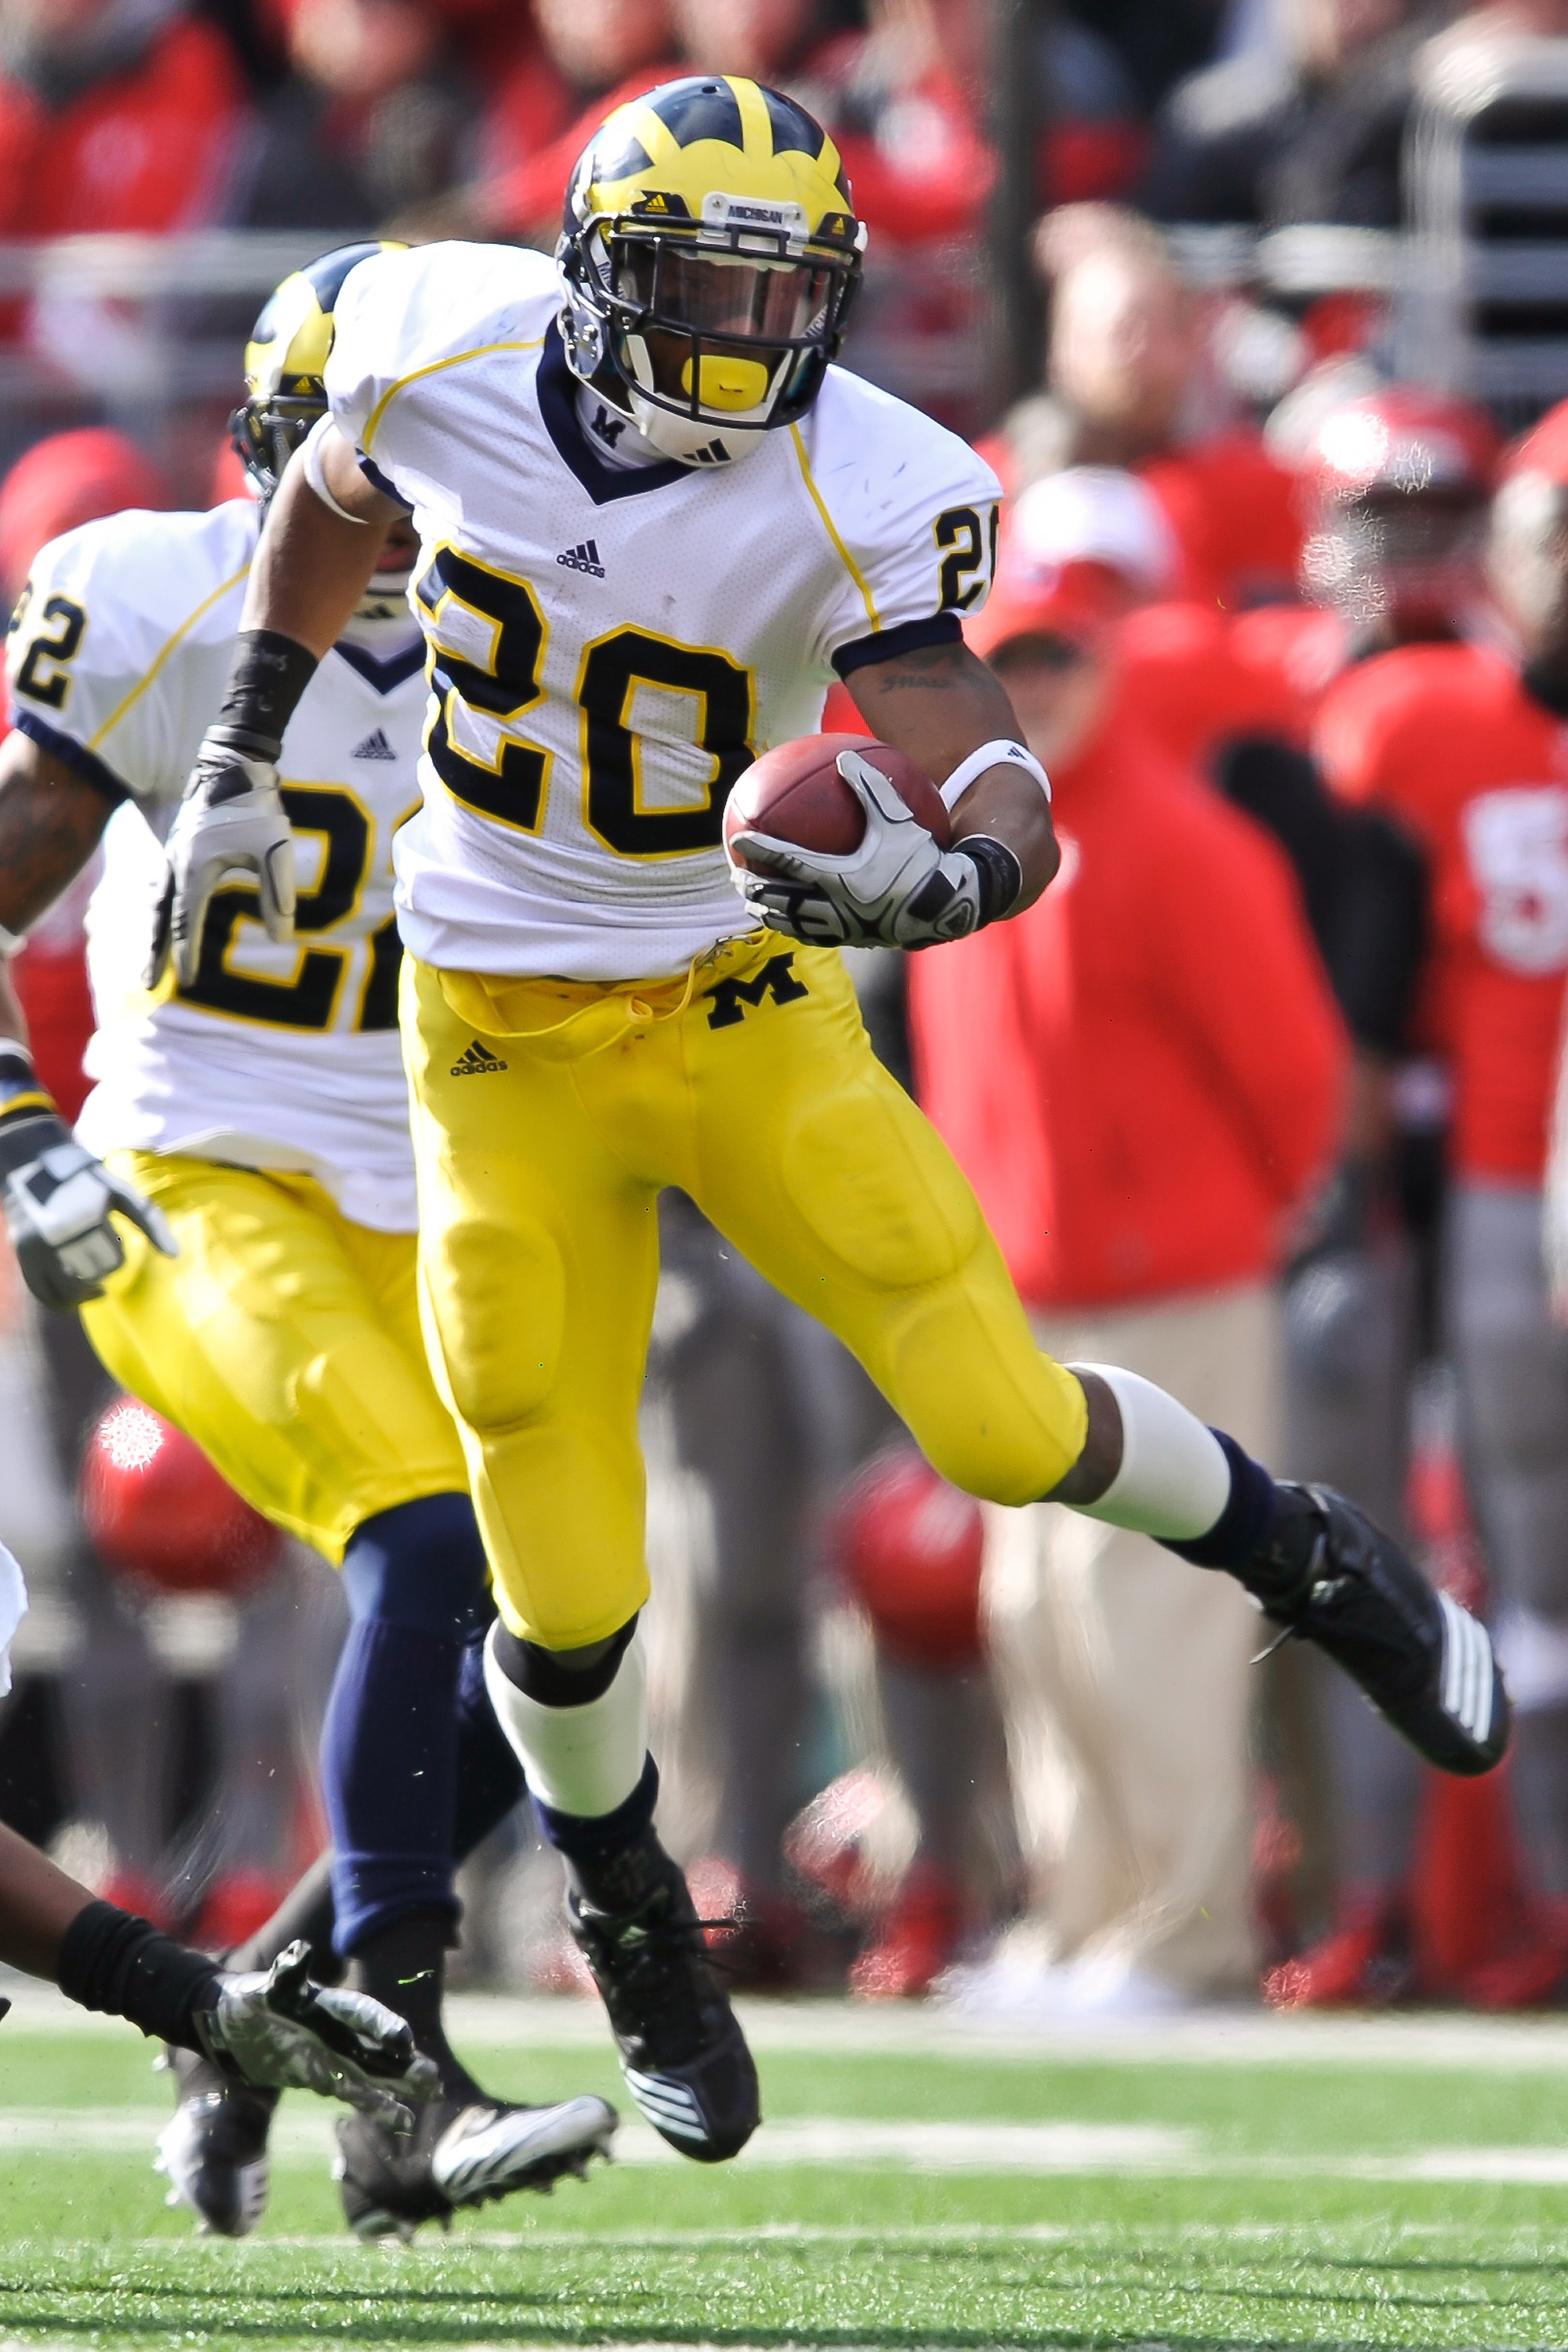 COLUMBUS, OH - NOVEMBER 27:  Michael Shaw #20 of the Michigan Wolverines runs with the ball against the Ohio State Buckeyes at Ohio Stadium on November 27, 2010 in Columbus, Ohio.  (Photo by Jamie Sabau/Getty Images)